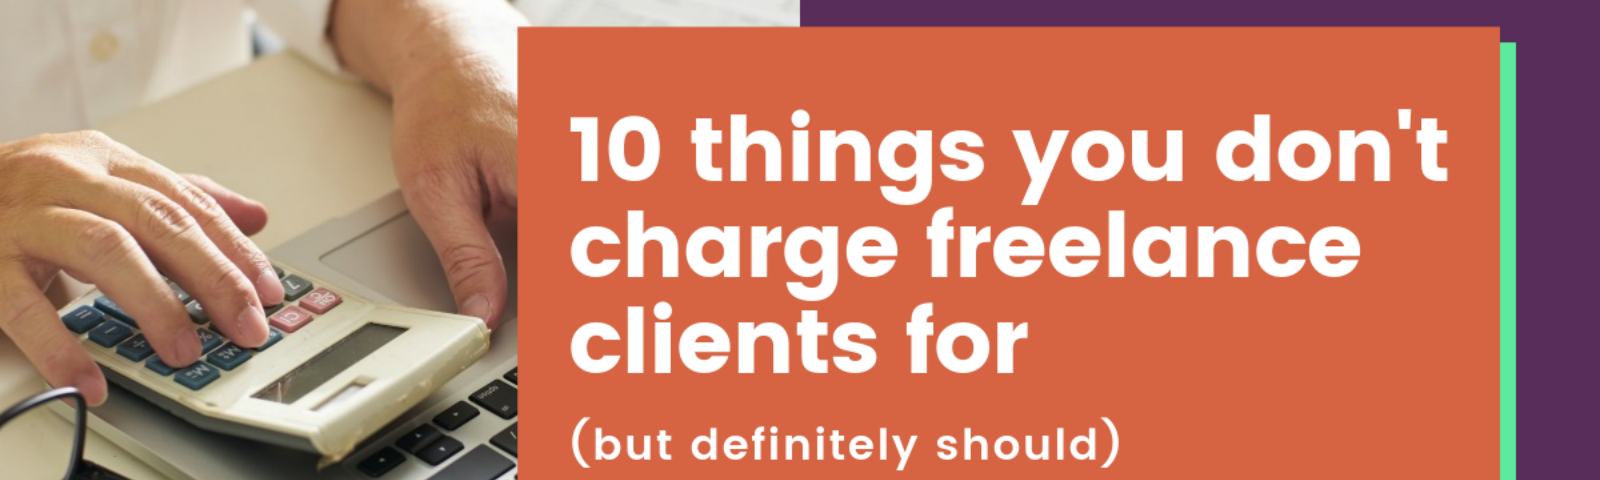 10 Things You Don't Charge Freelance Clients For But Definitely Should